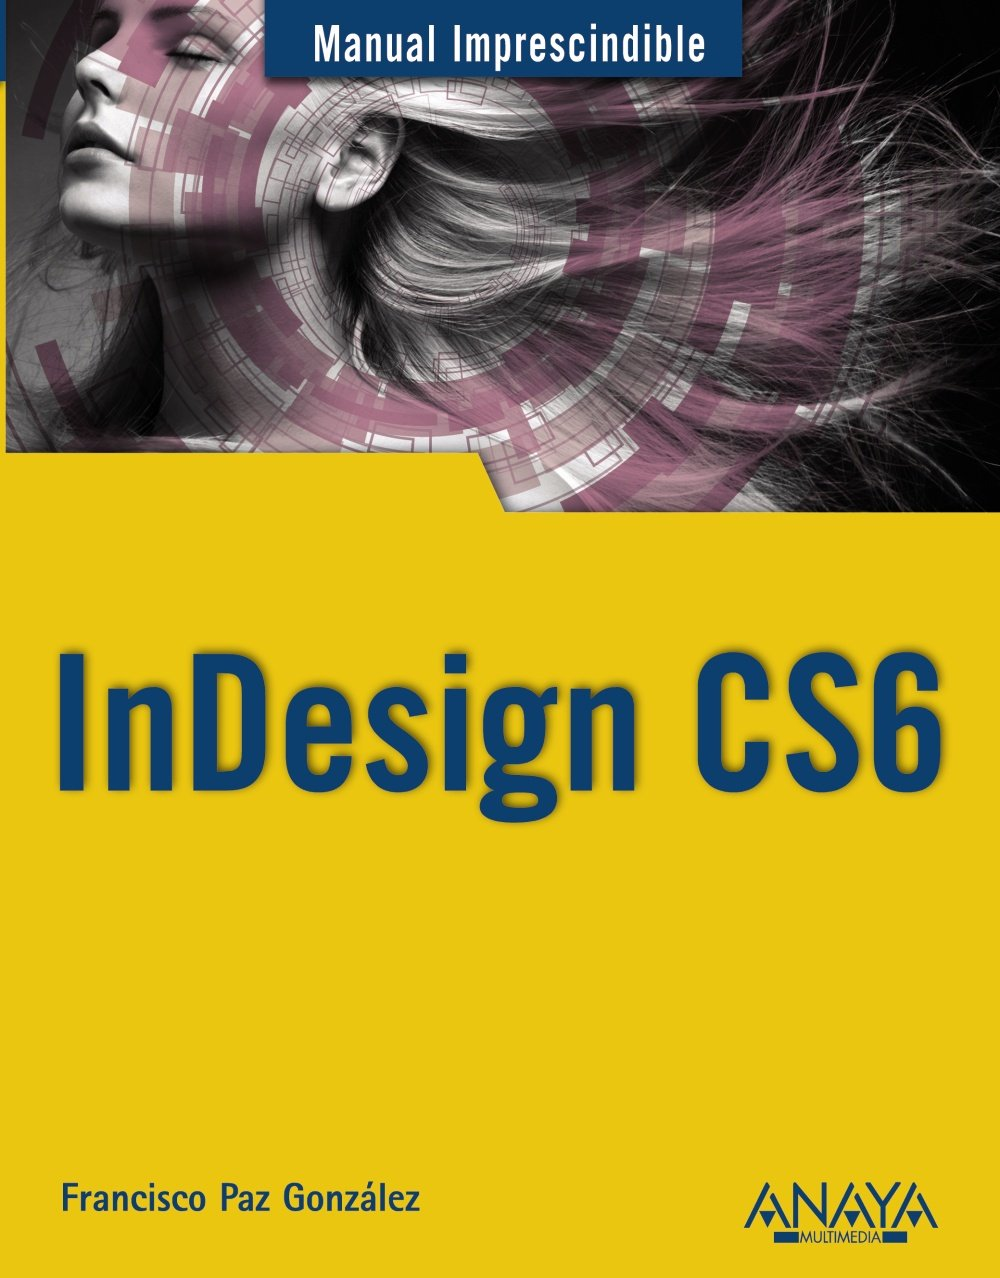 InDesign CS6 (Manuales Imprescindibles) Tapa blanda – 11 sep 2012 Francisco Paz González ANAYA MULTIMEDIA 8441532346 Computer Science